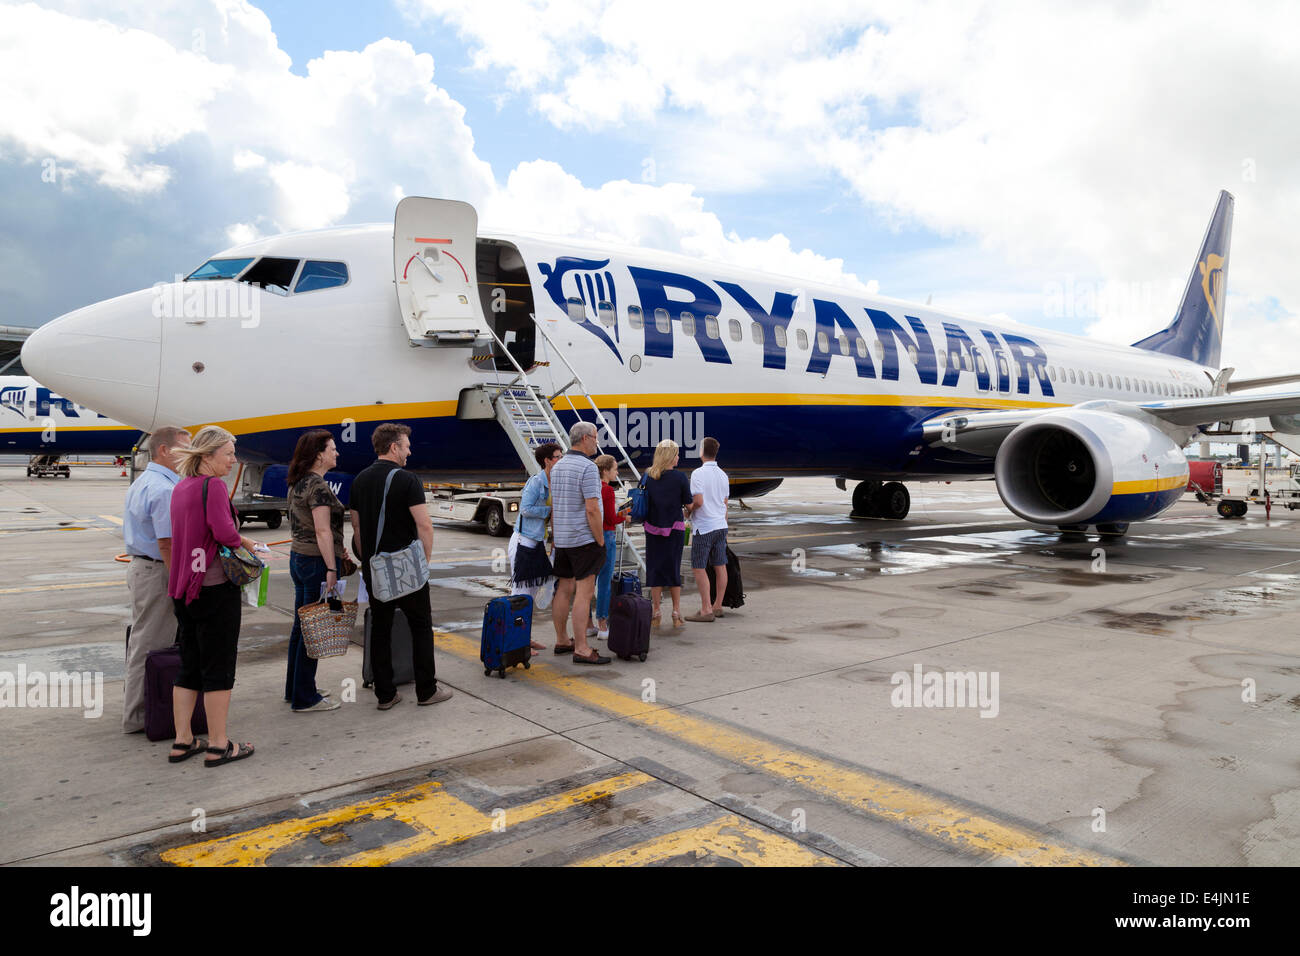 Ryanair plane at Stansted Airport UK with passengers boarding - Stock Image